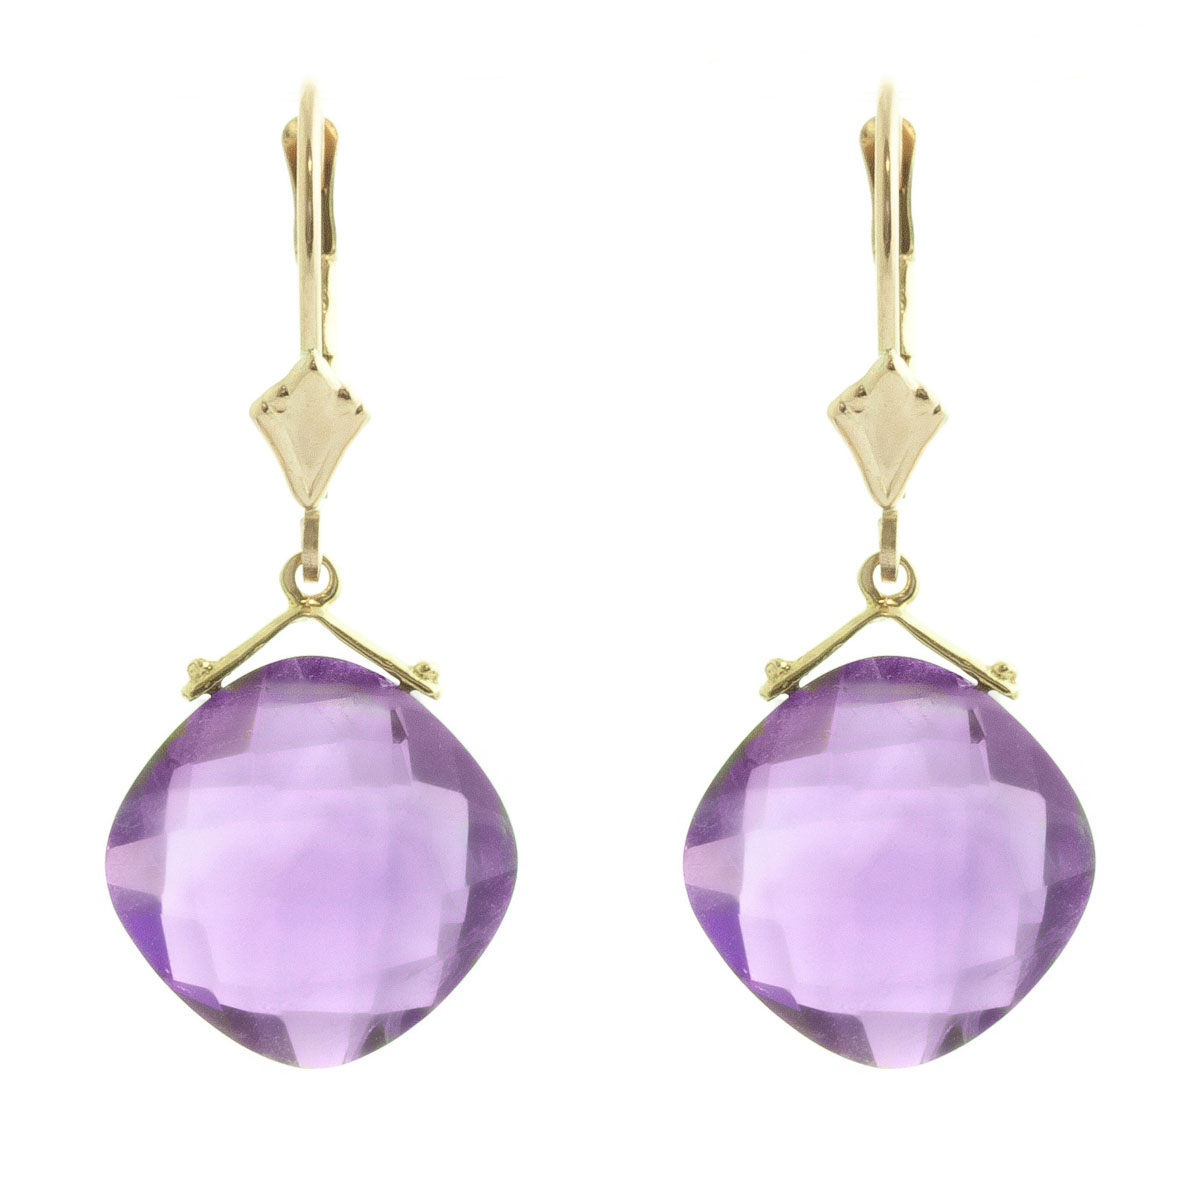 Amethyst Deflection Drop Earrings 17.5 ctw in 9ct Gold